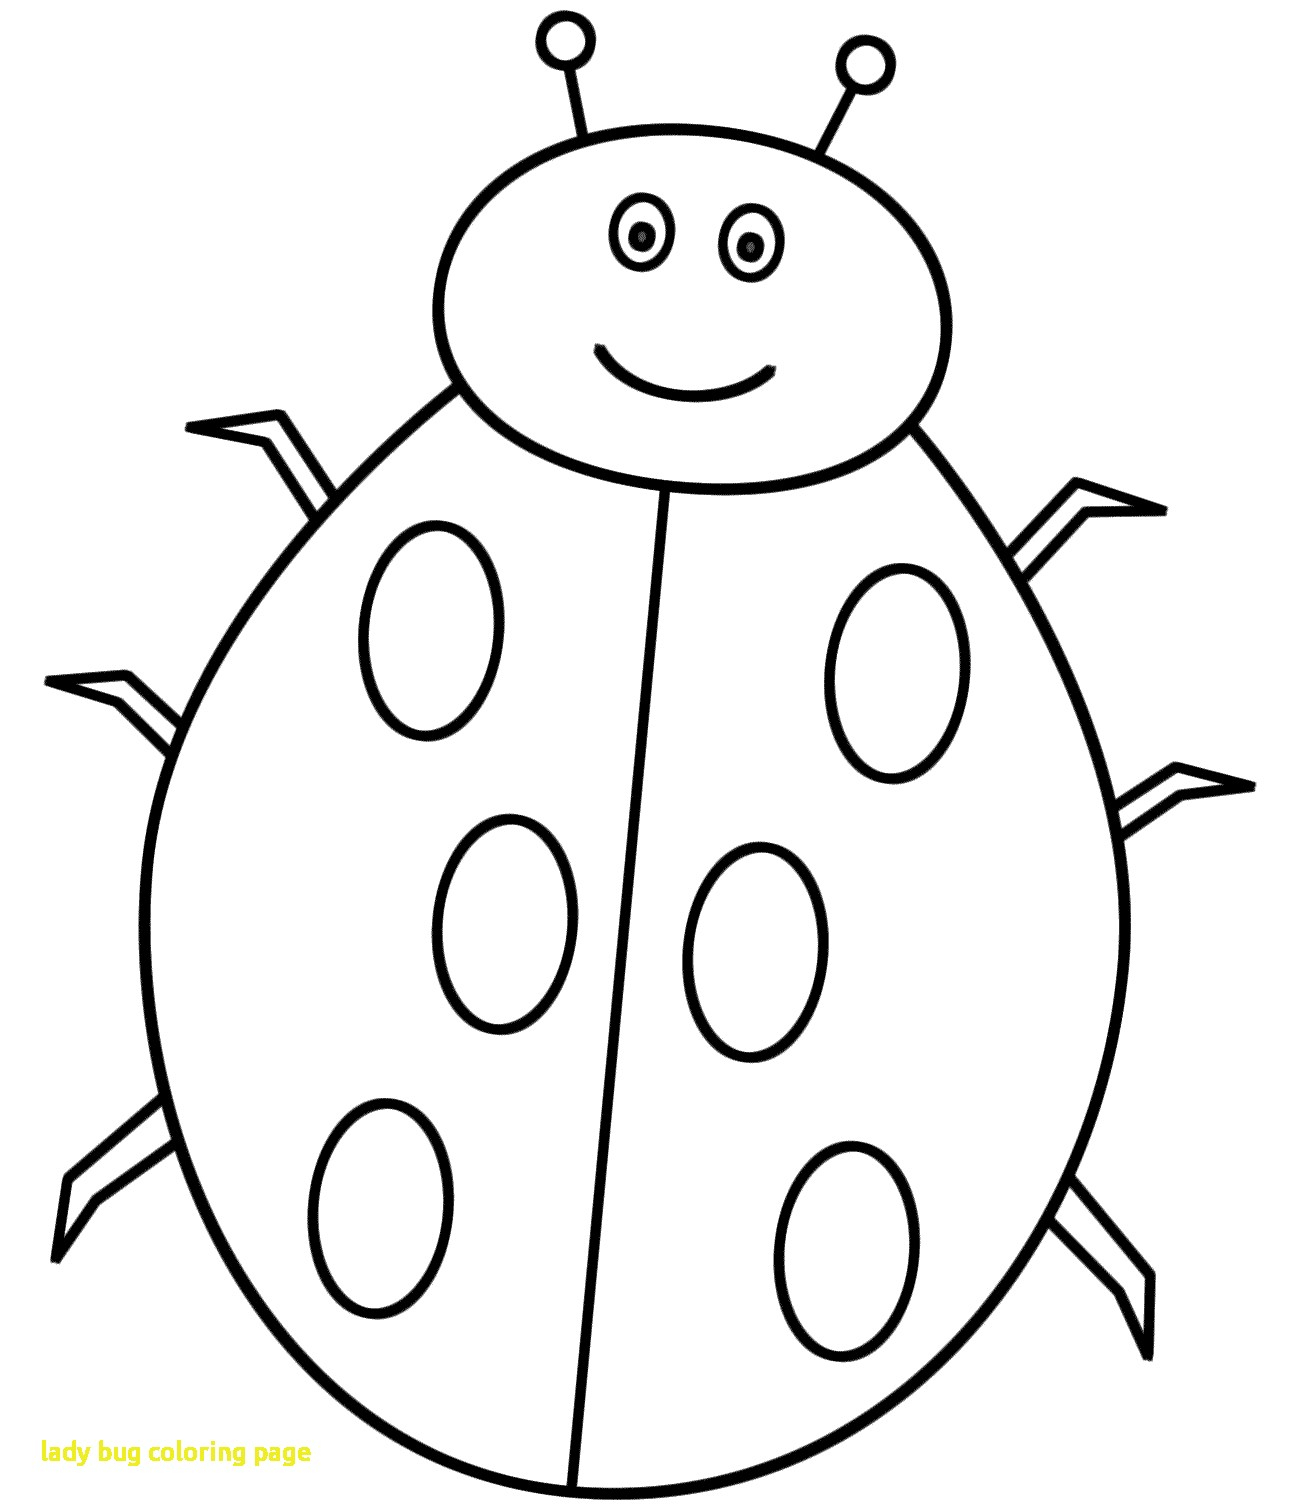 Bug Coloring Pages For Kids Value Colouring Pages Insects Ladybug Insect Coloring For